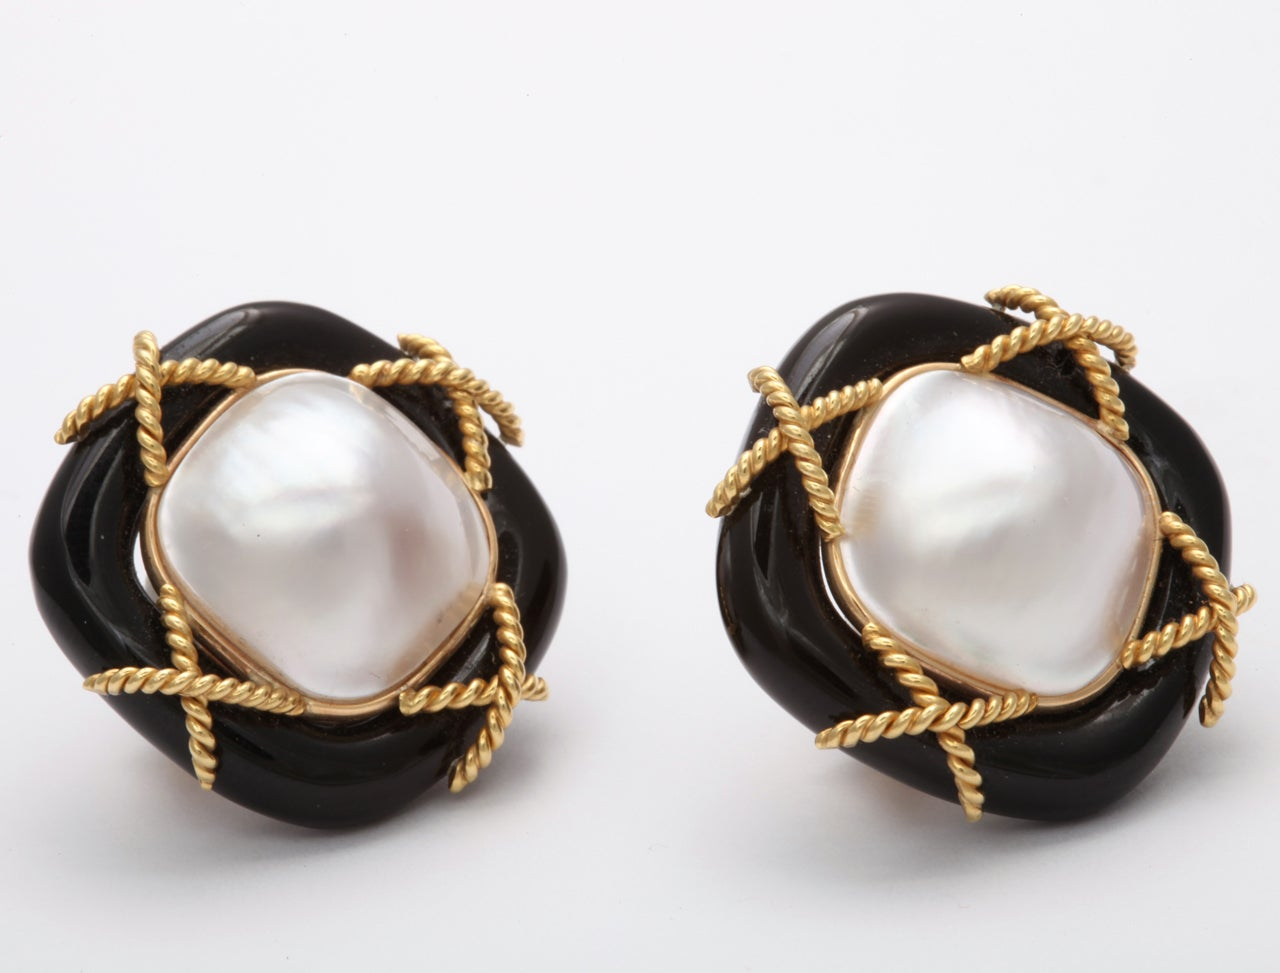 Clip on Earrings  -  Large Mabe Pearls - Cushion Shaped and 